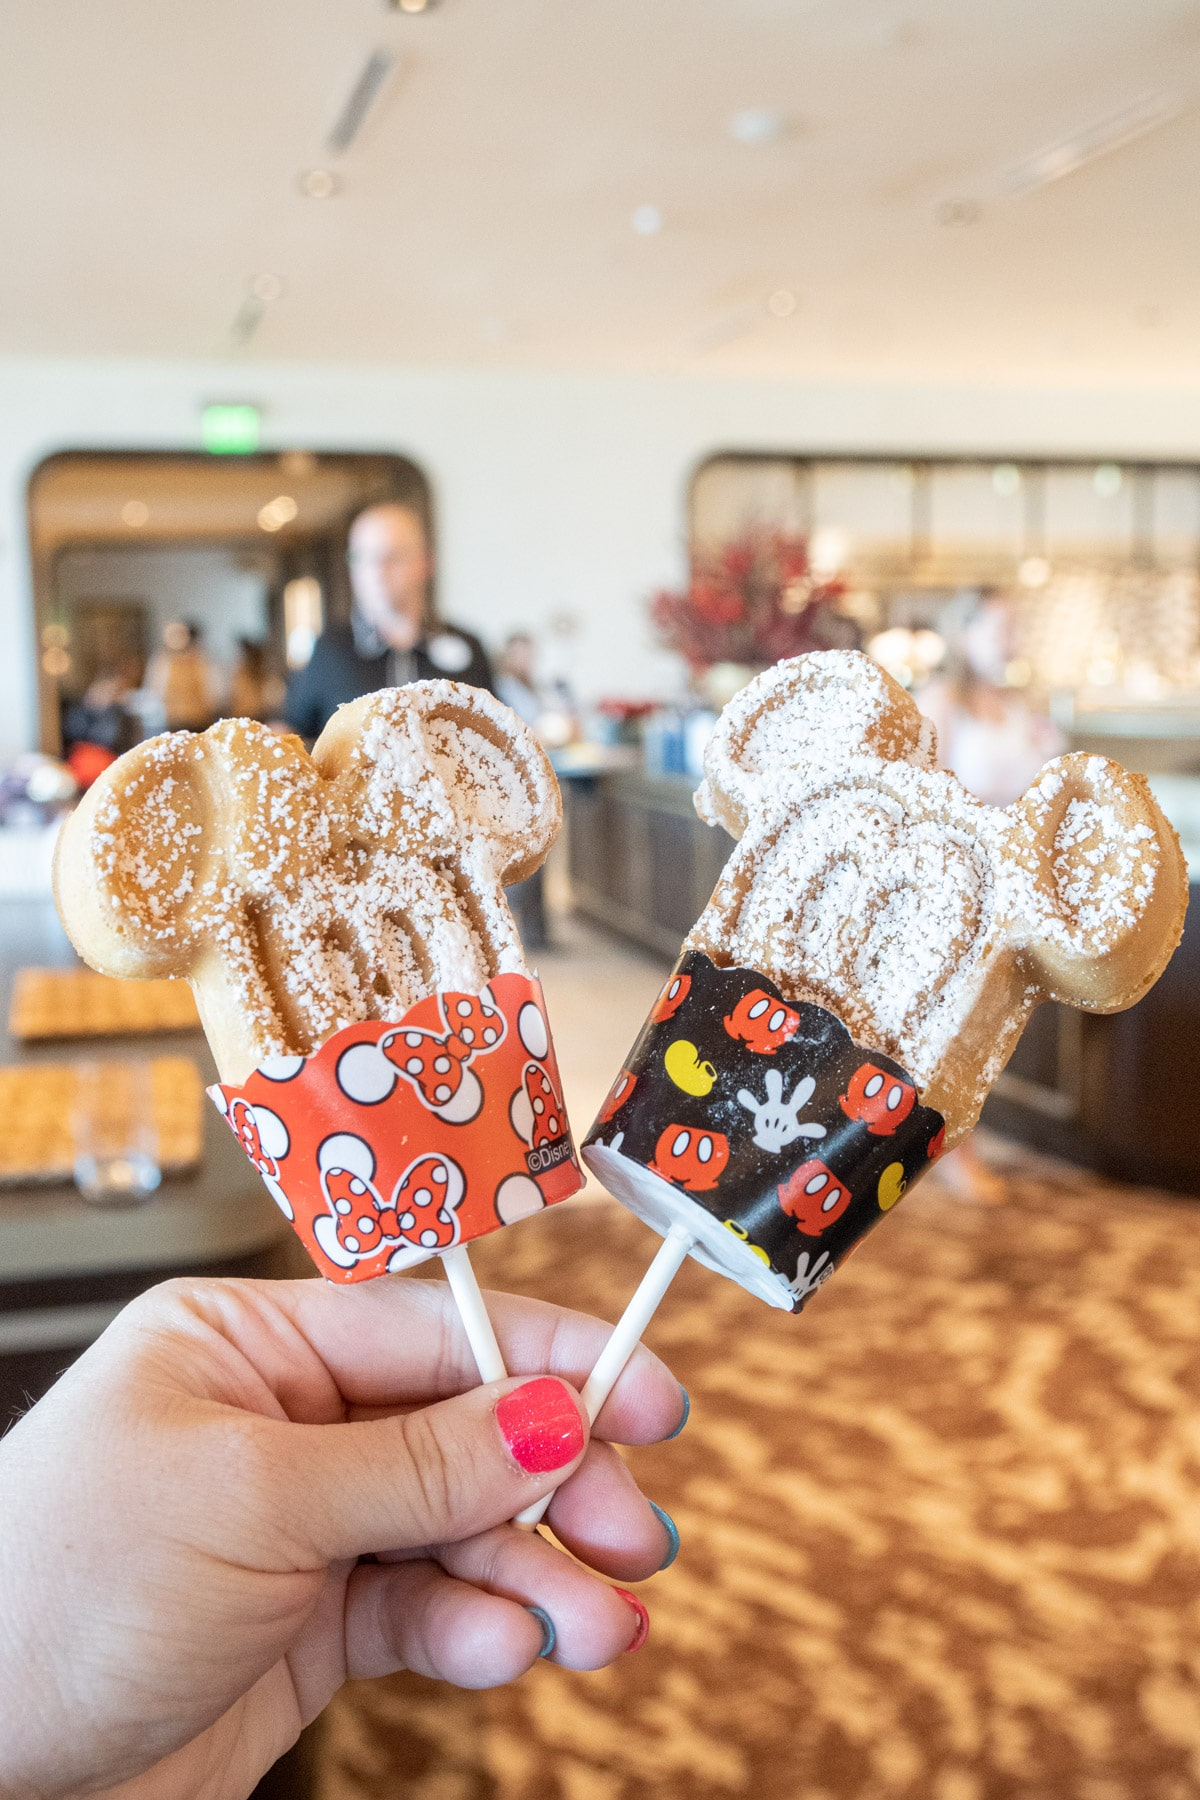 Hand holding two Mickey waffle dipper sticks